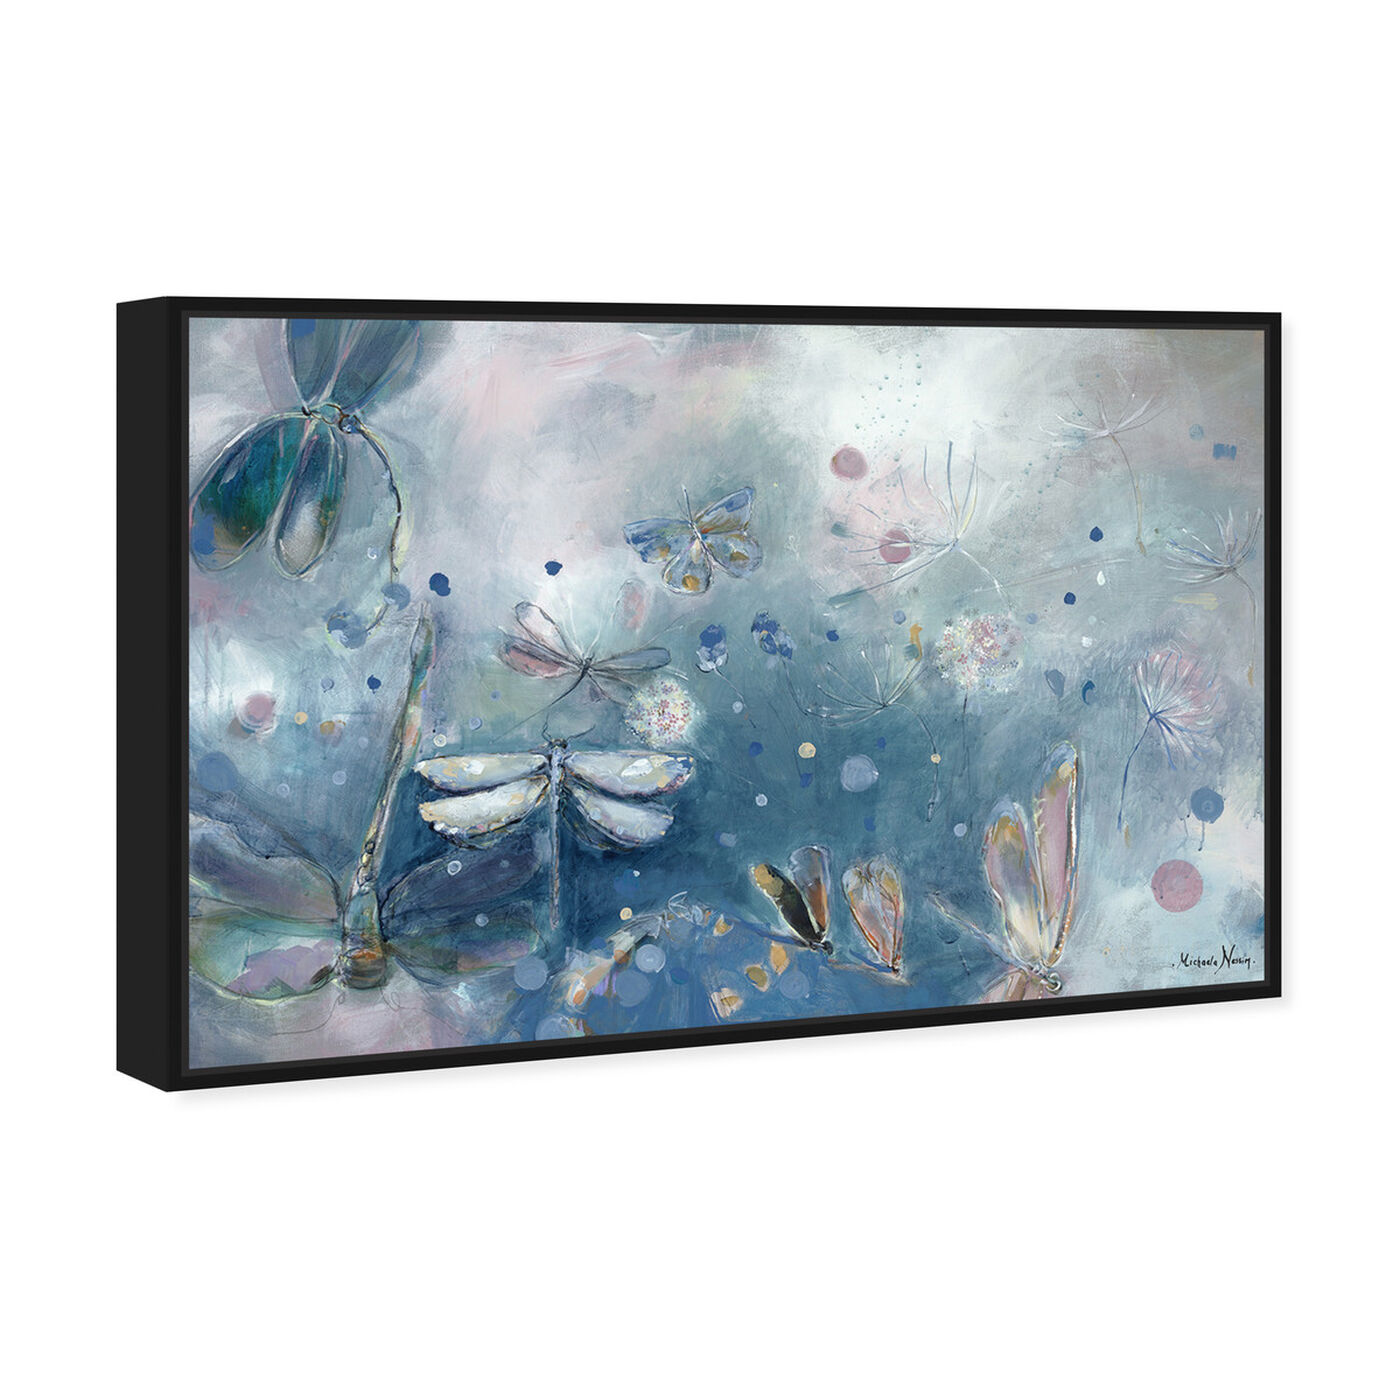 Angled view of Michaela Nessim - A dragonfly dream featuring animals and insects art.